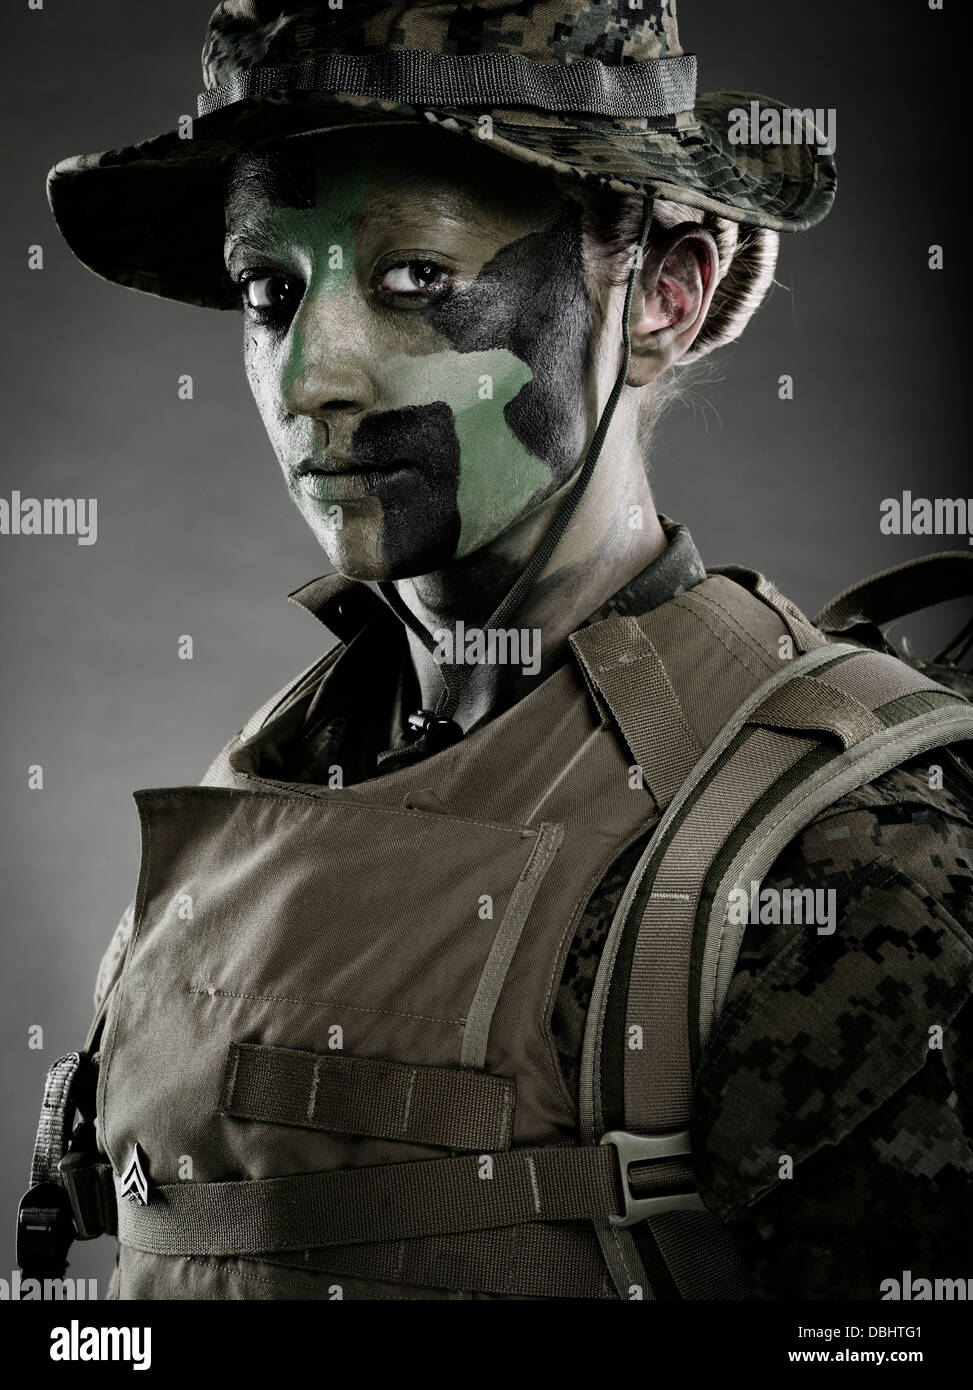 Portrait of Female United States Marine Corps Soldier in utility uniform MARPAT pixelated camouflage with camo face - Stock Image